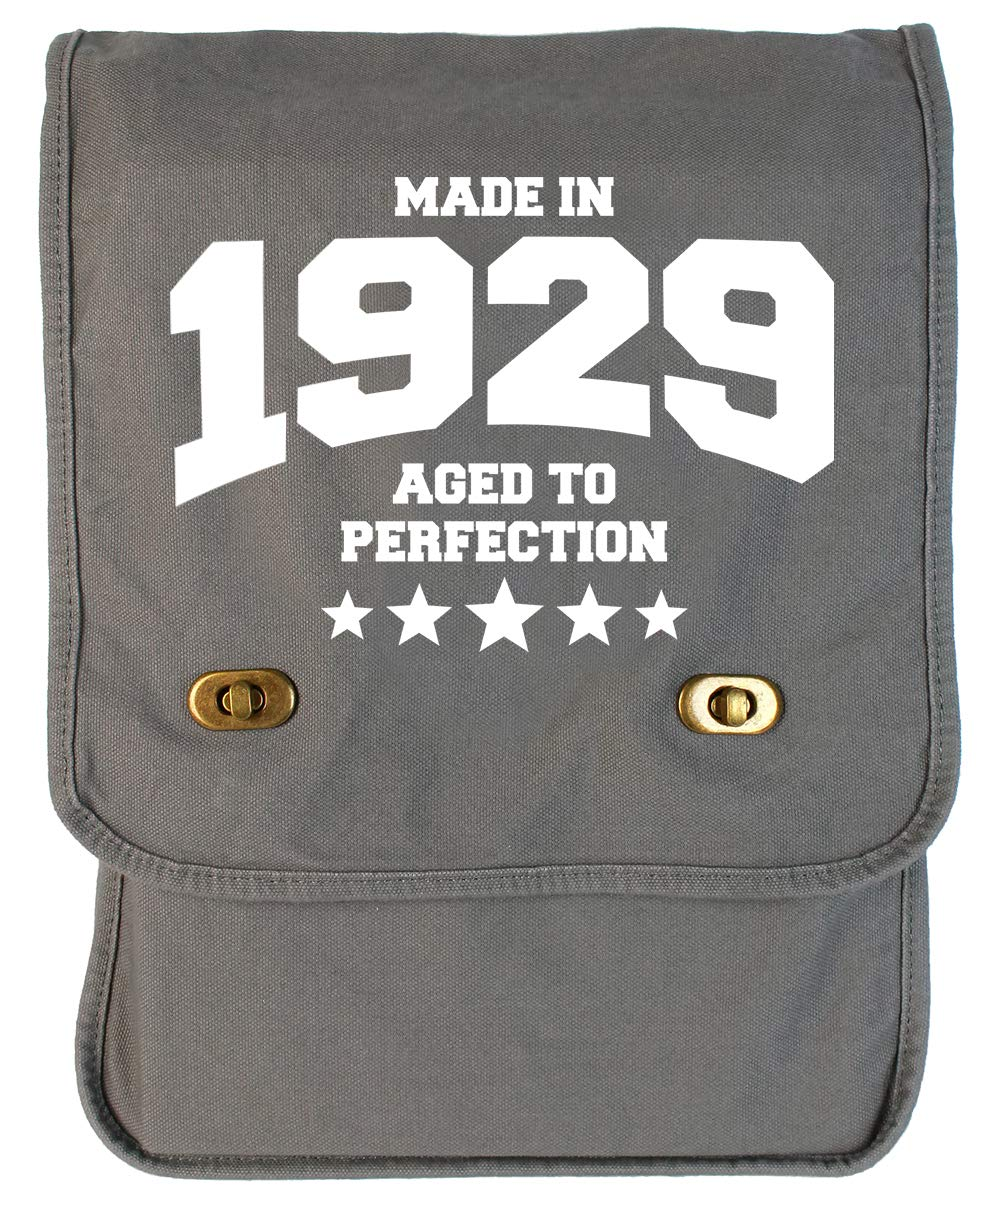 Tenacitee Athletic Aged to Perfection 1929 Grey Brushed Canvas Messenger Bag